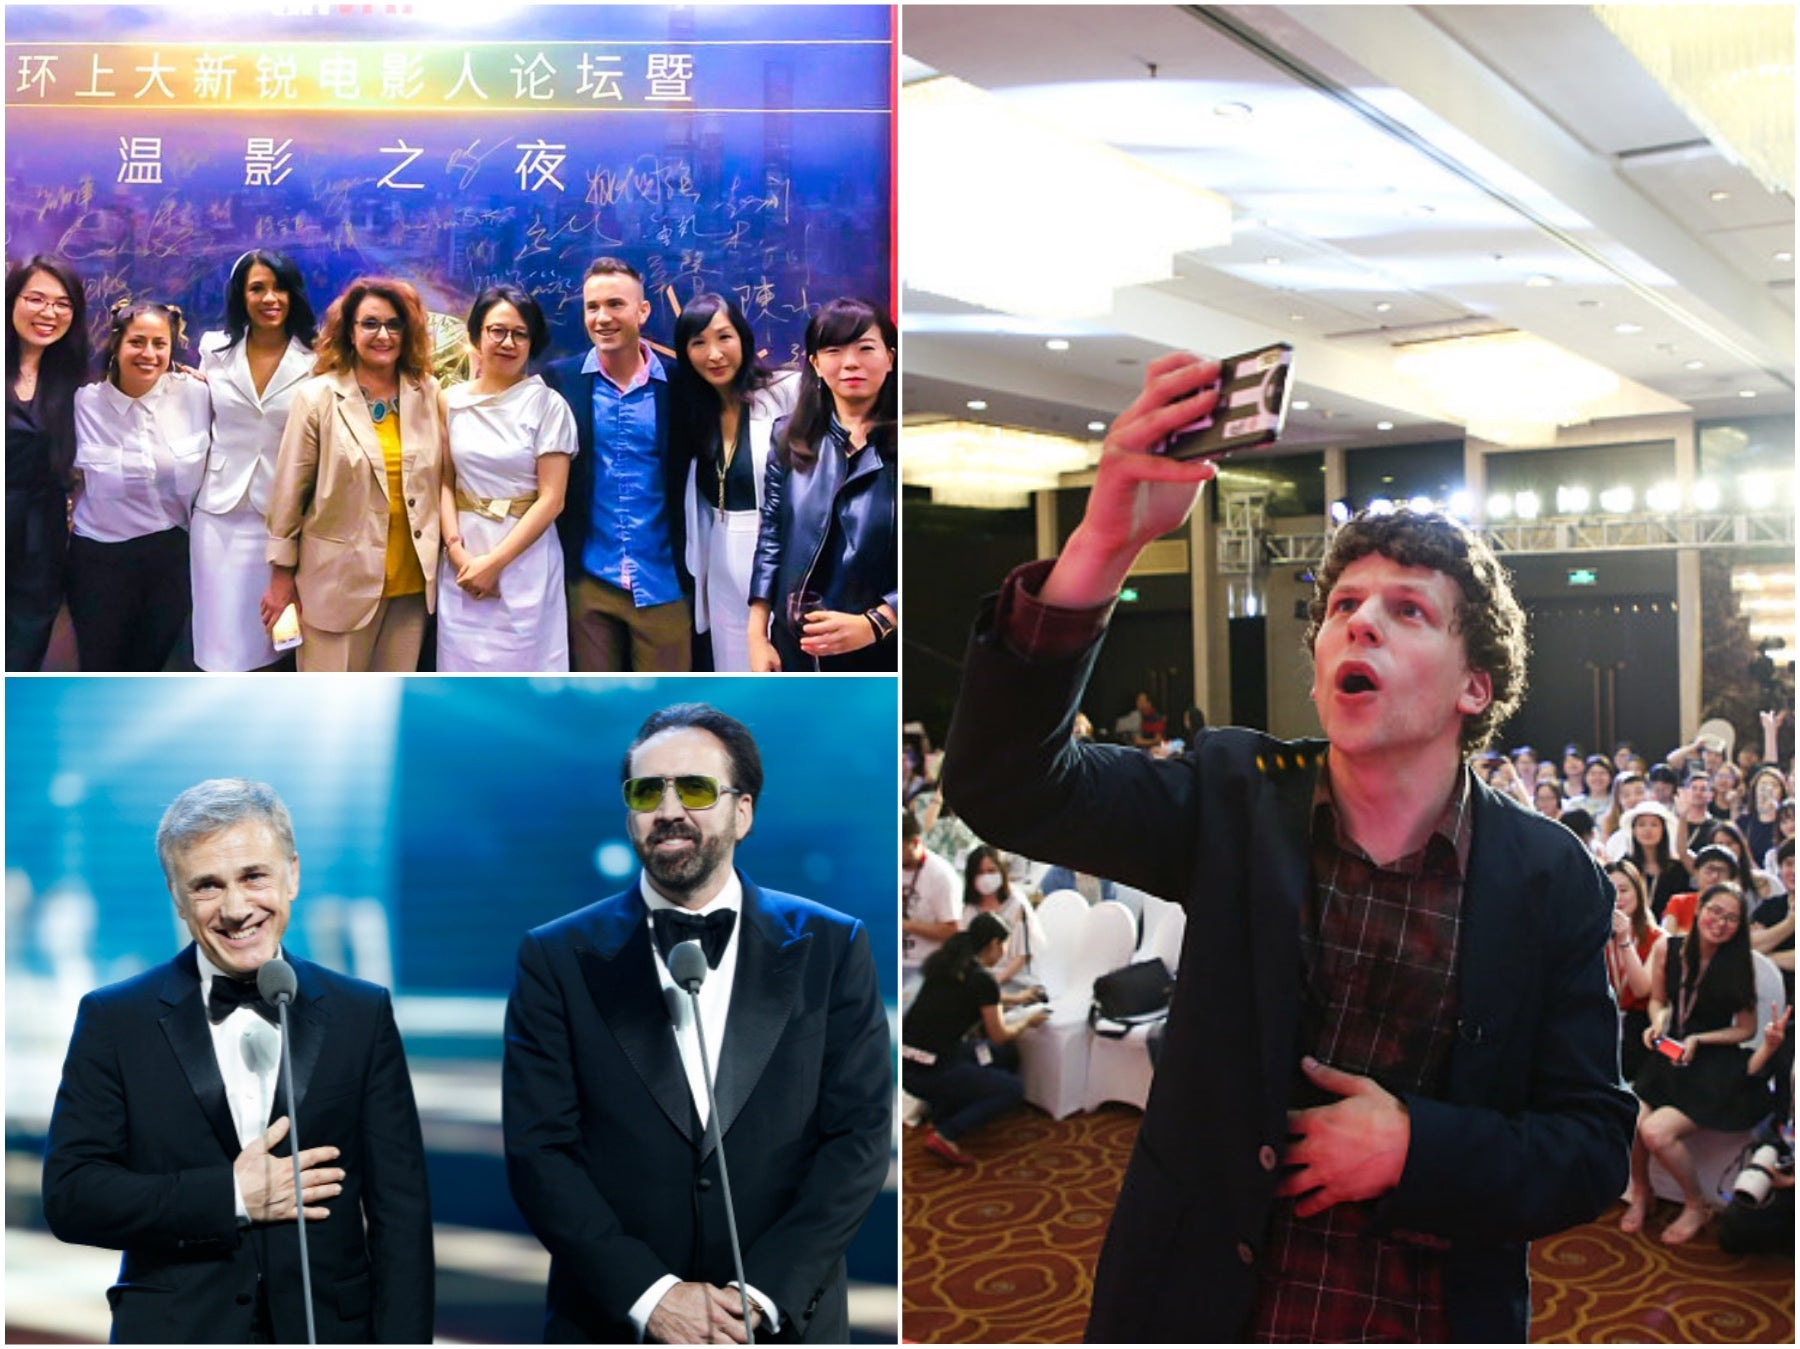 Scenes from the Shanghai International Film Festival